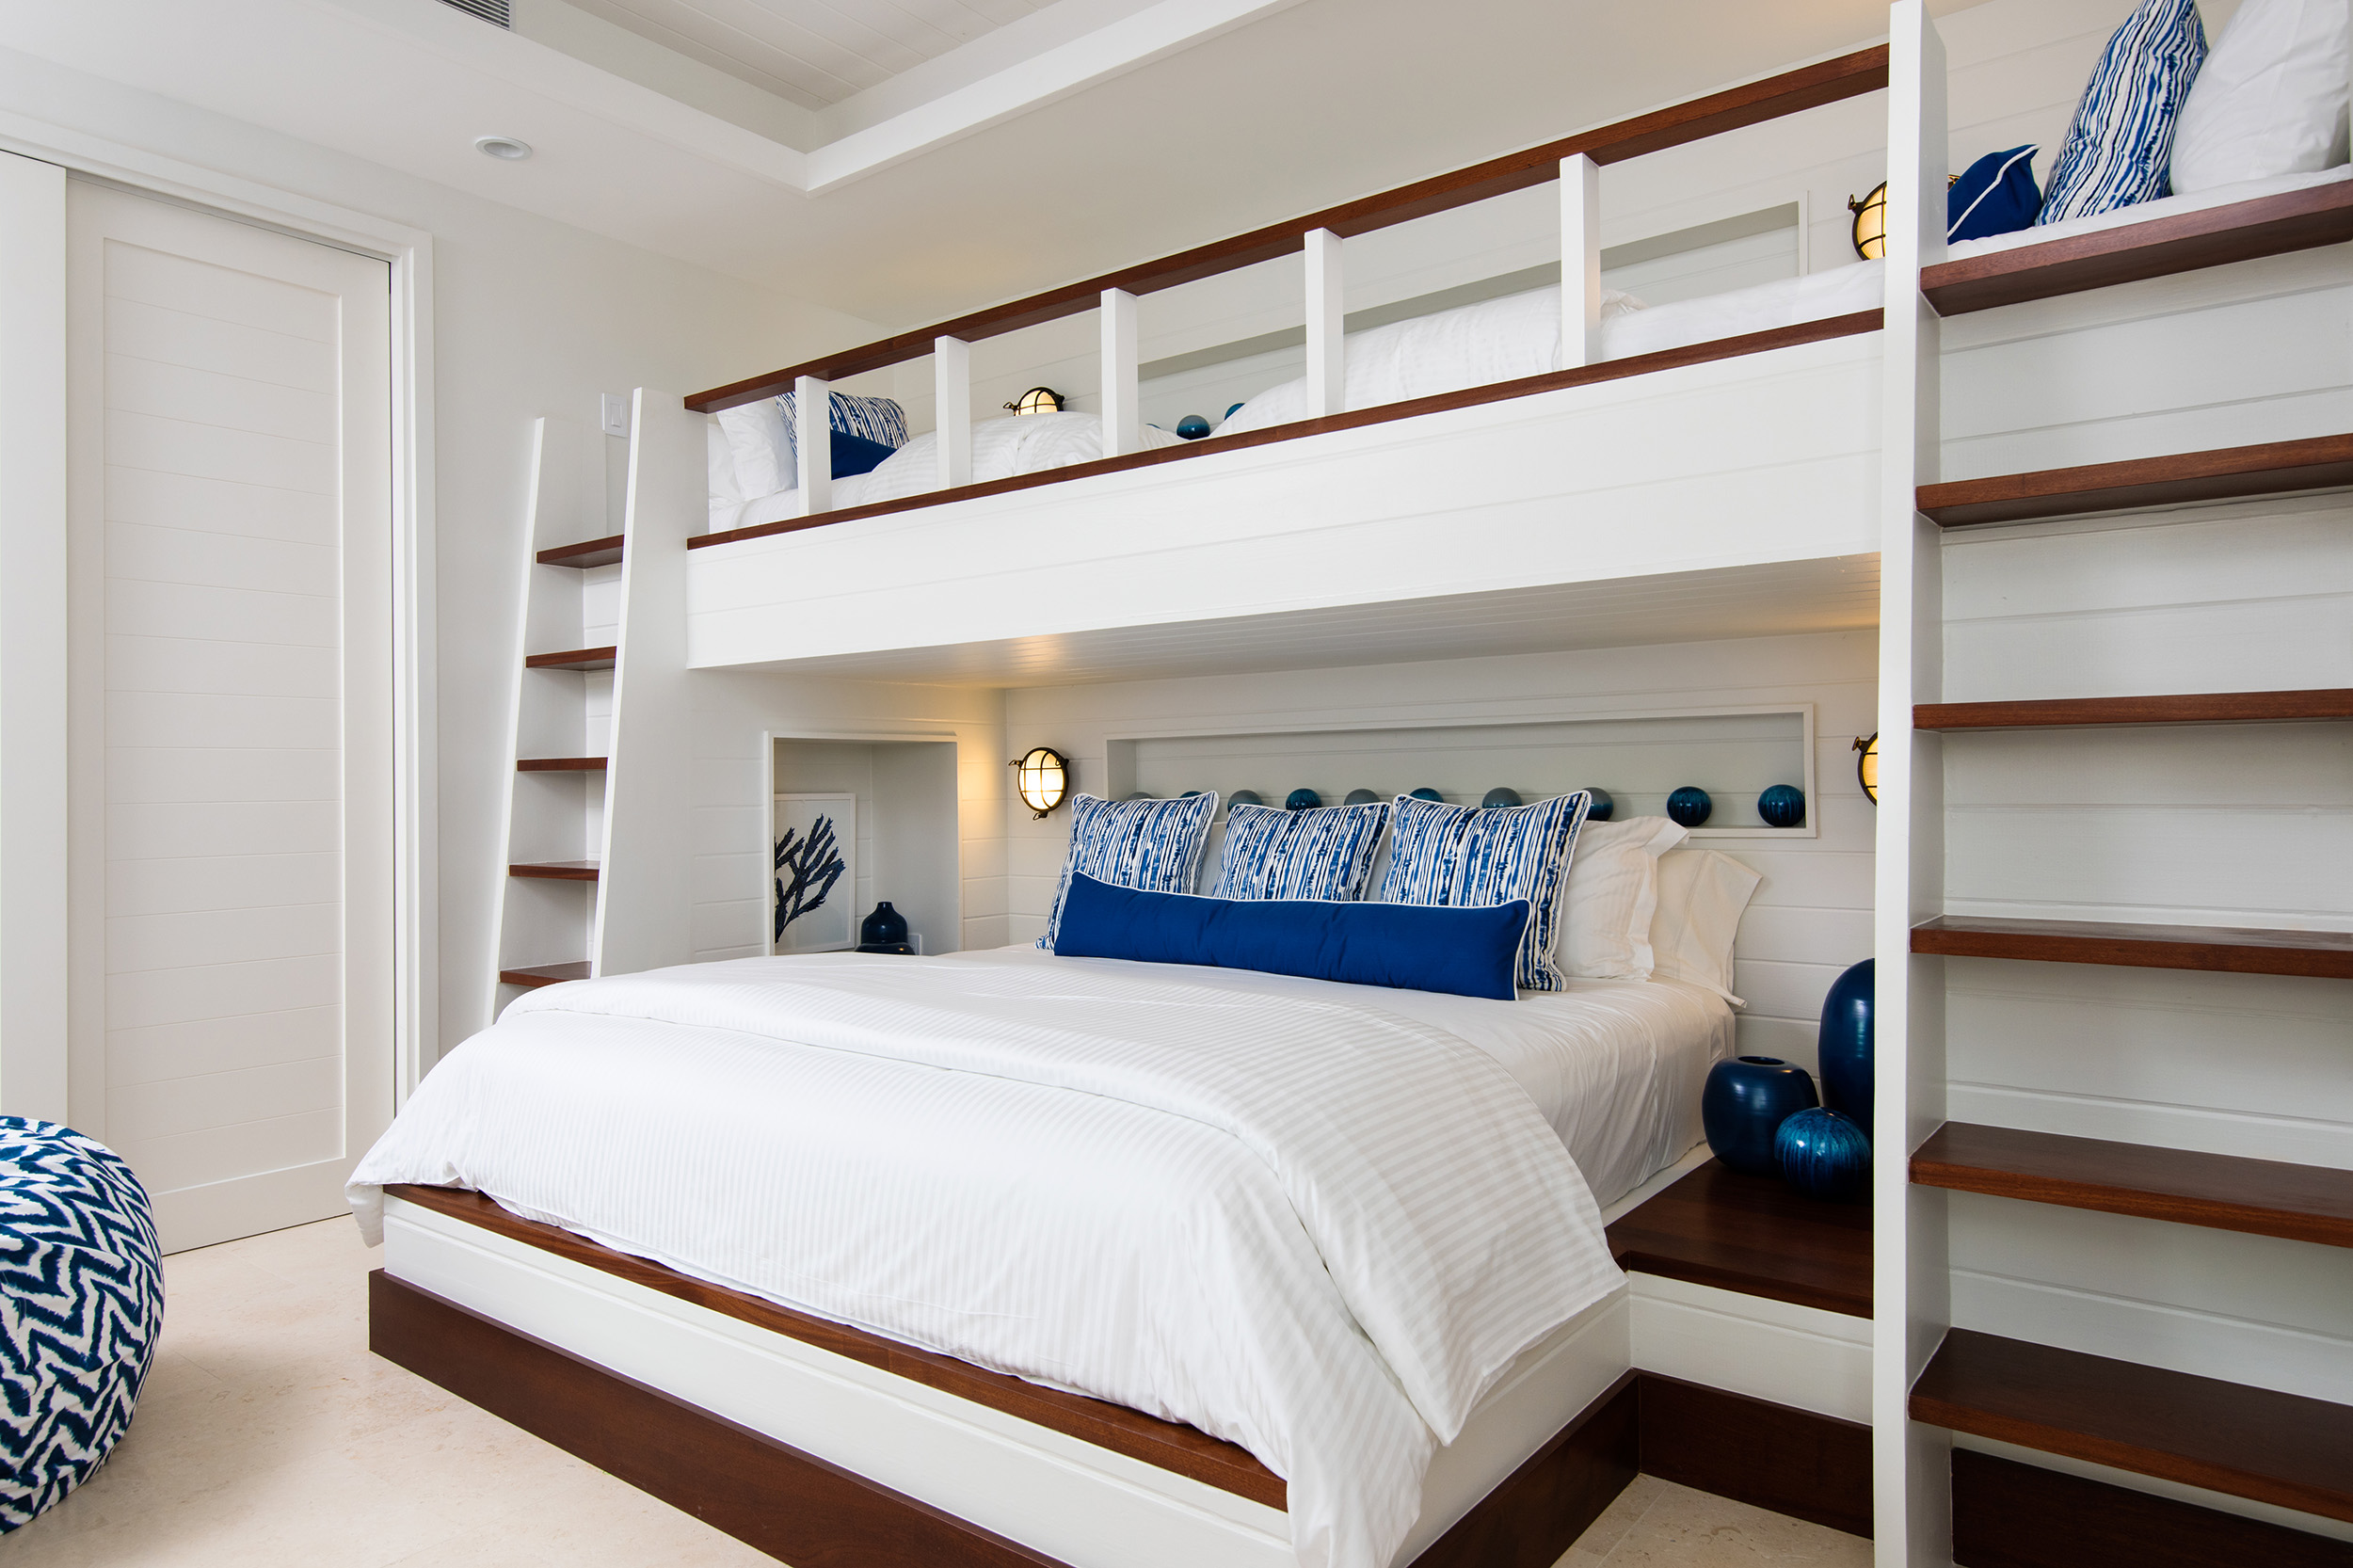 Hawksbill - view of one of the bedrooms, showing the bunk beds